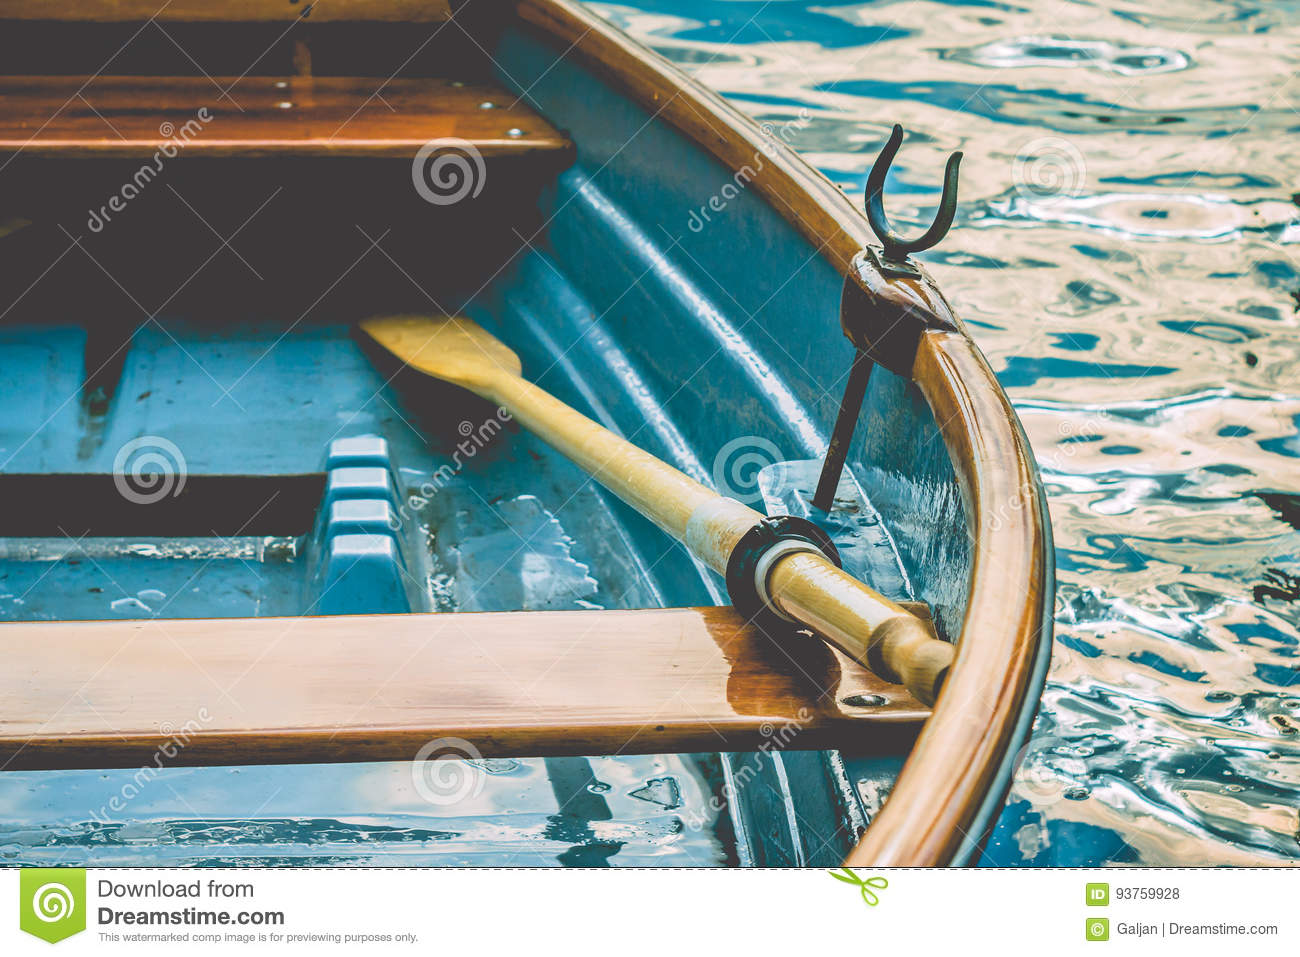 Download Close Up Of An Wooden Pleasure Rowboat At The Pier Of A Lake Stock Photo - Image of harbor, obsolete: 93759928